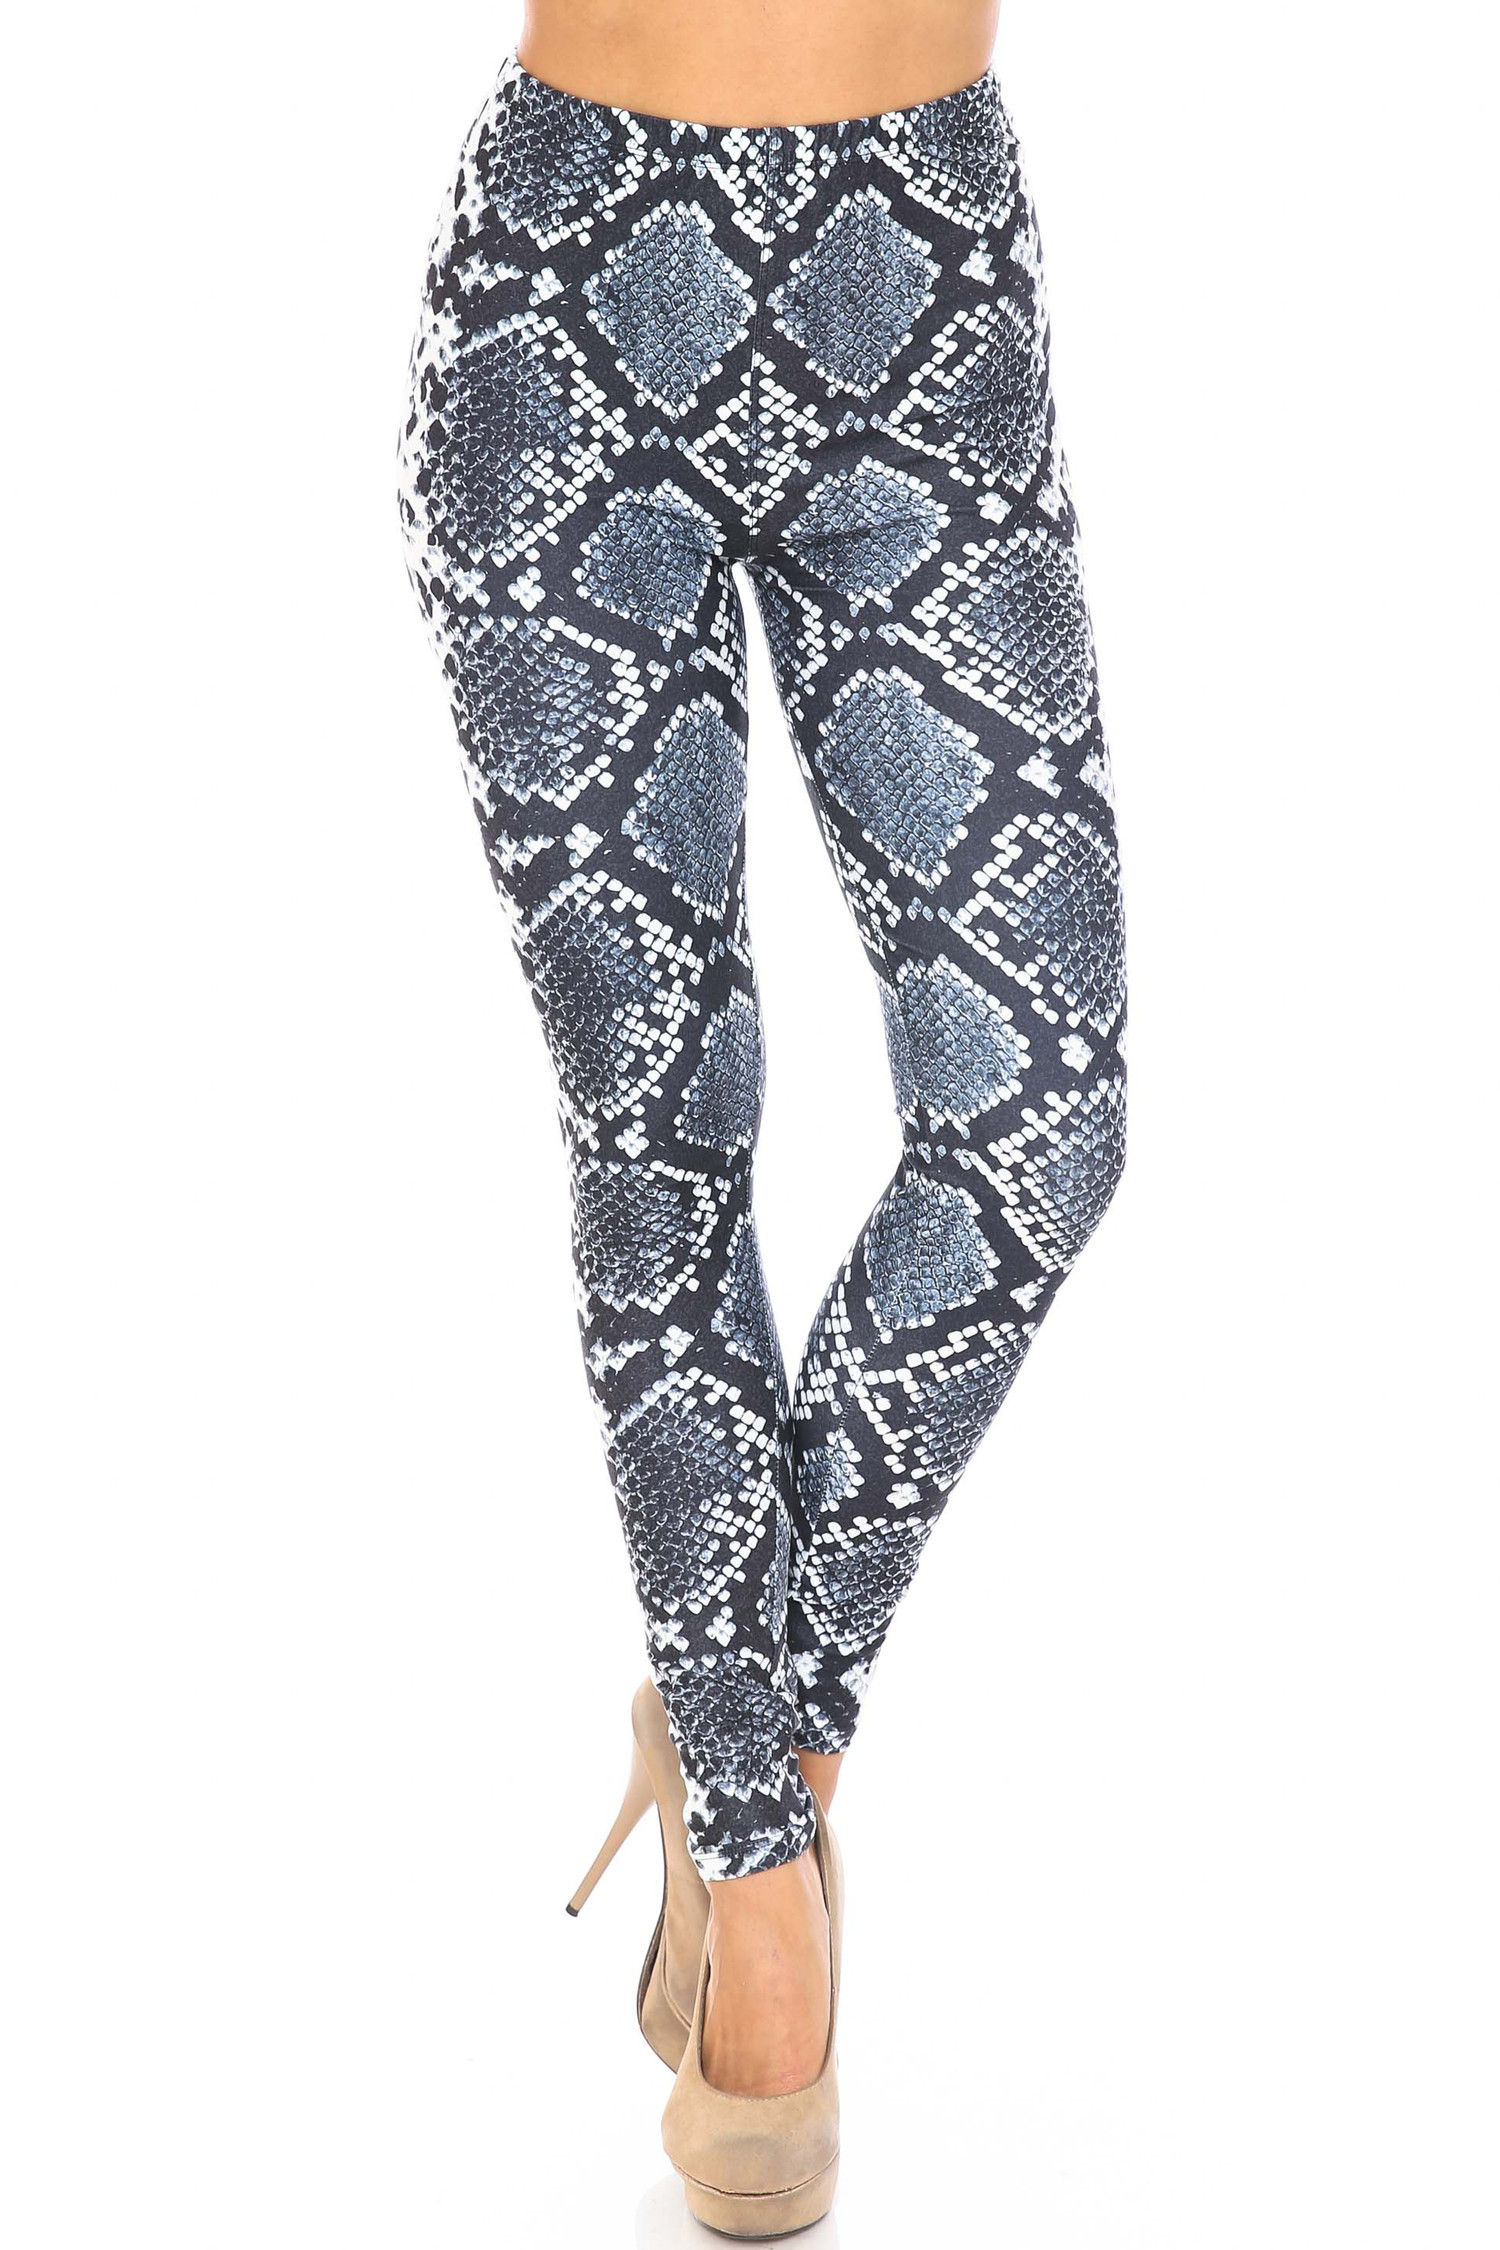 Front side image of Creamy Soft Steel Blue Boa Leggings - USA Fashion™